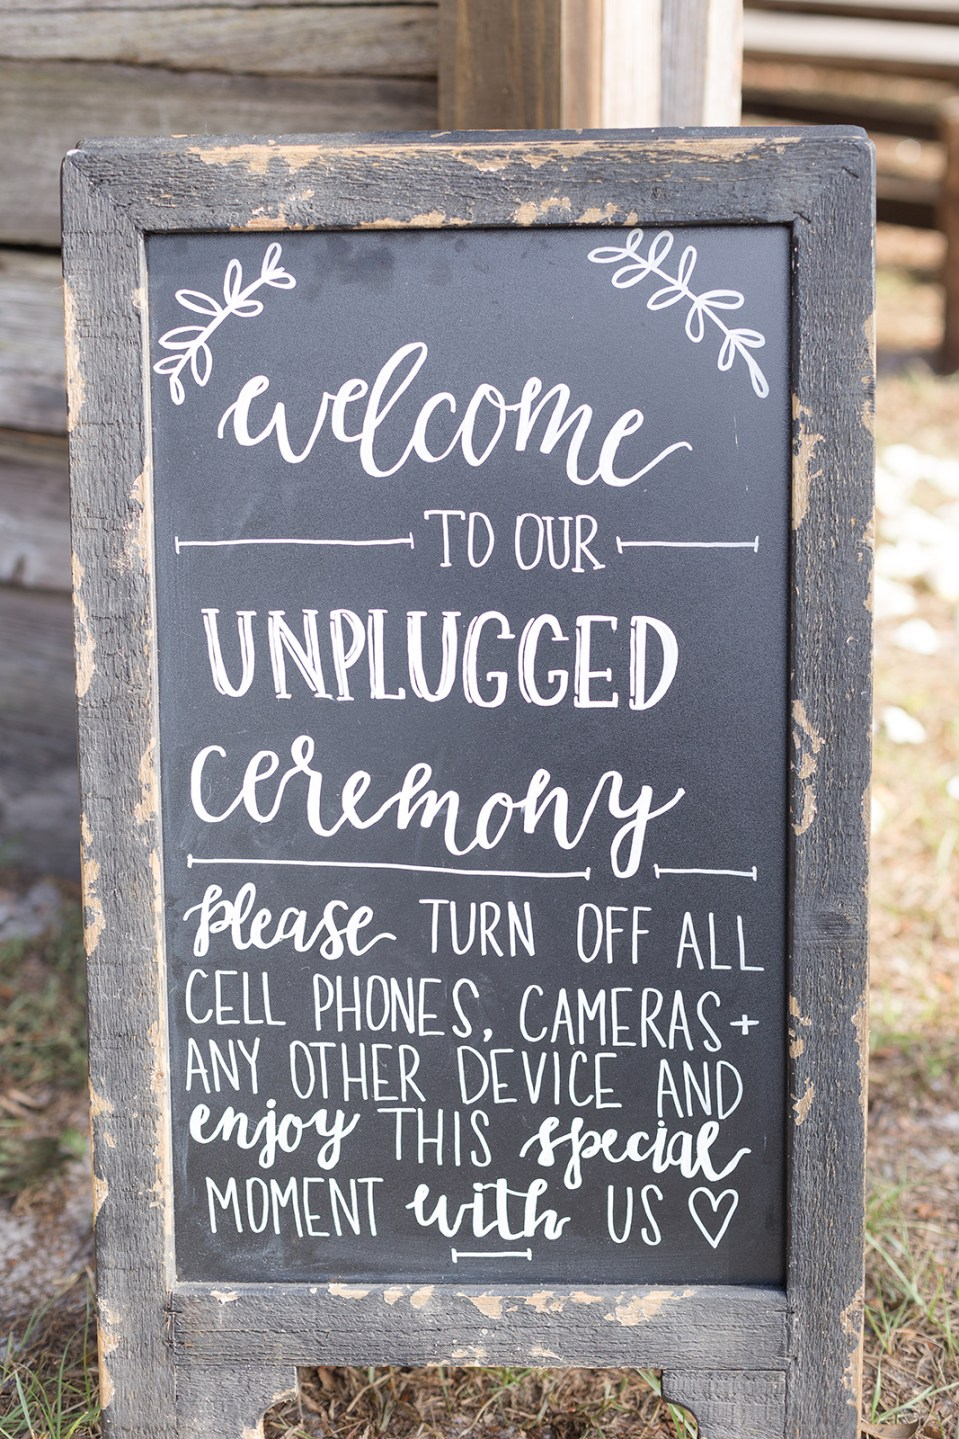 Chalkboard sign that says Welcome to our unplugged wedding ceremony